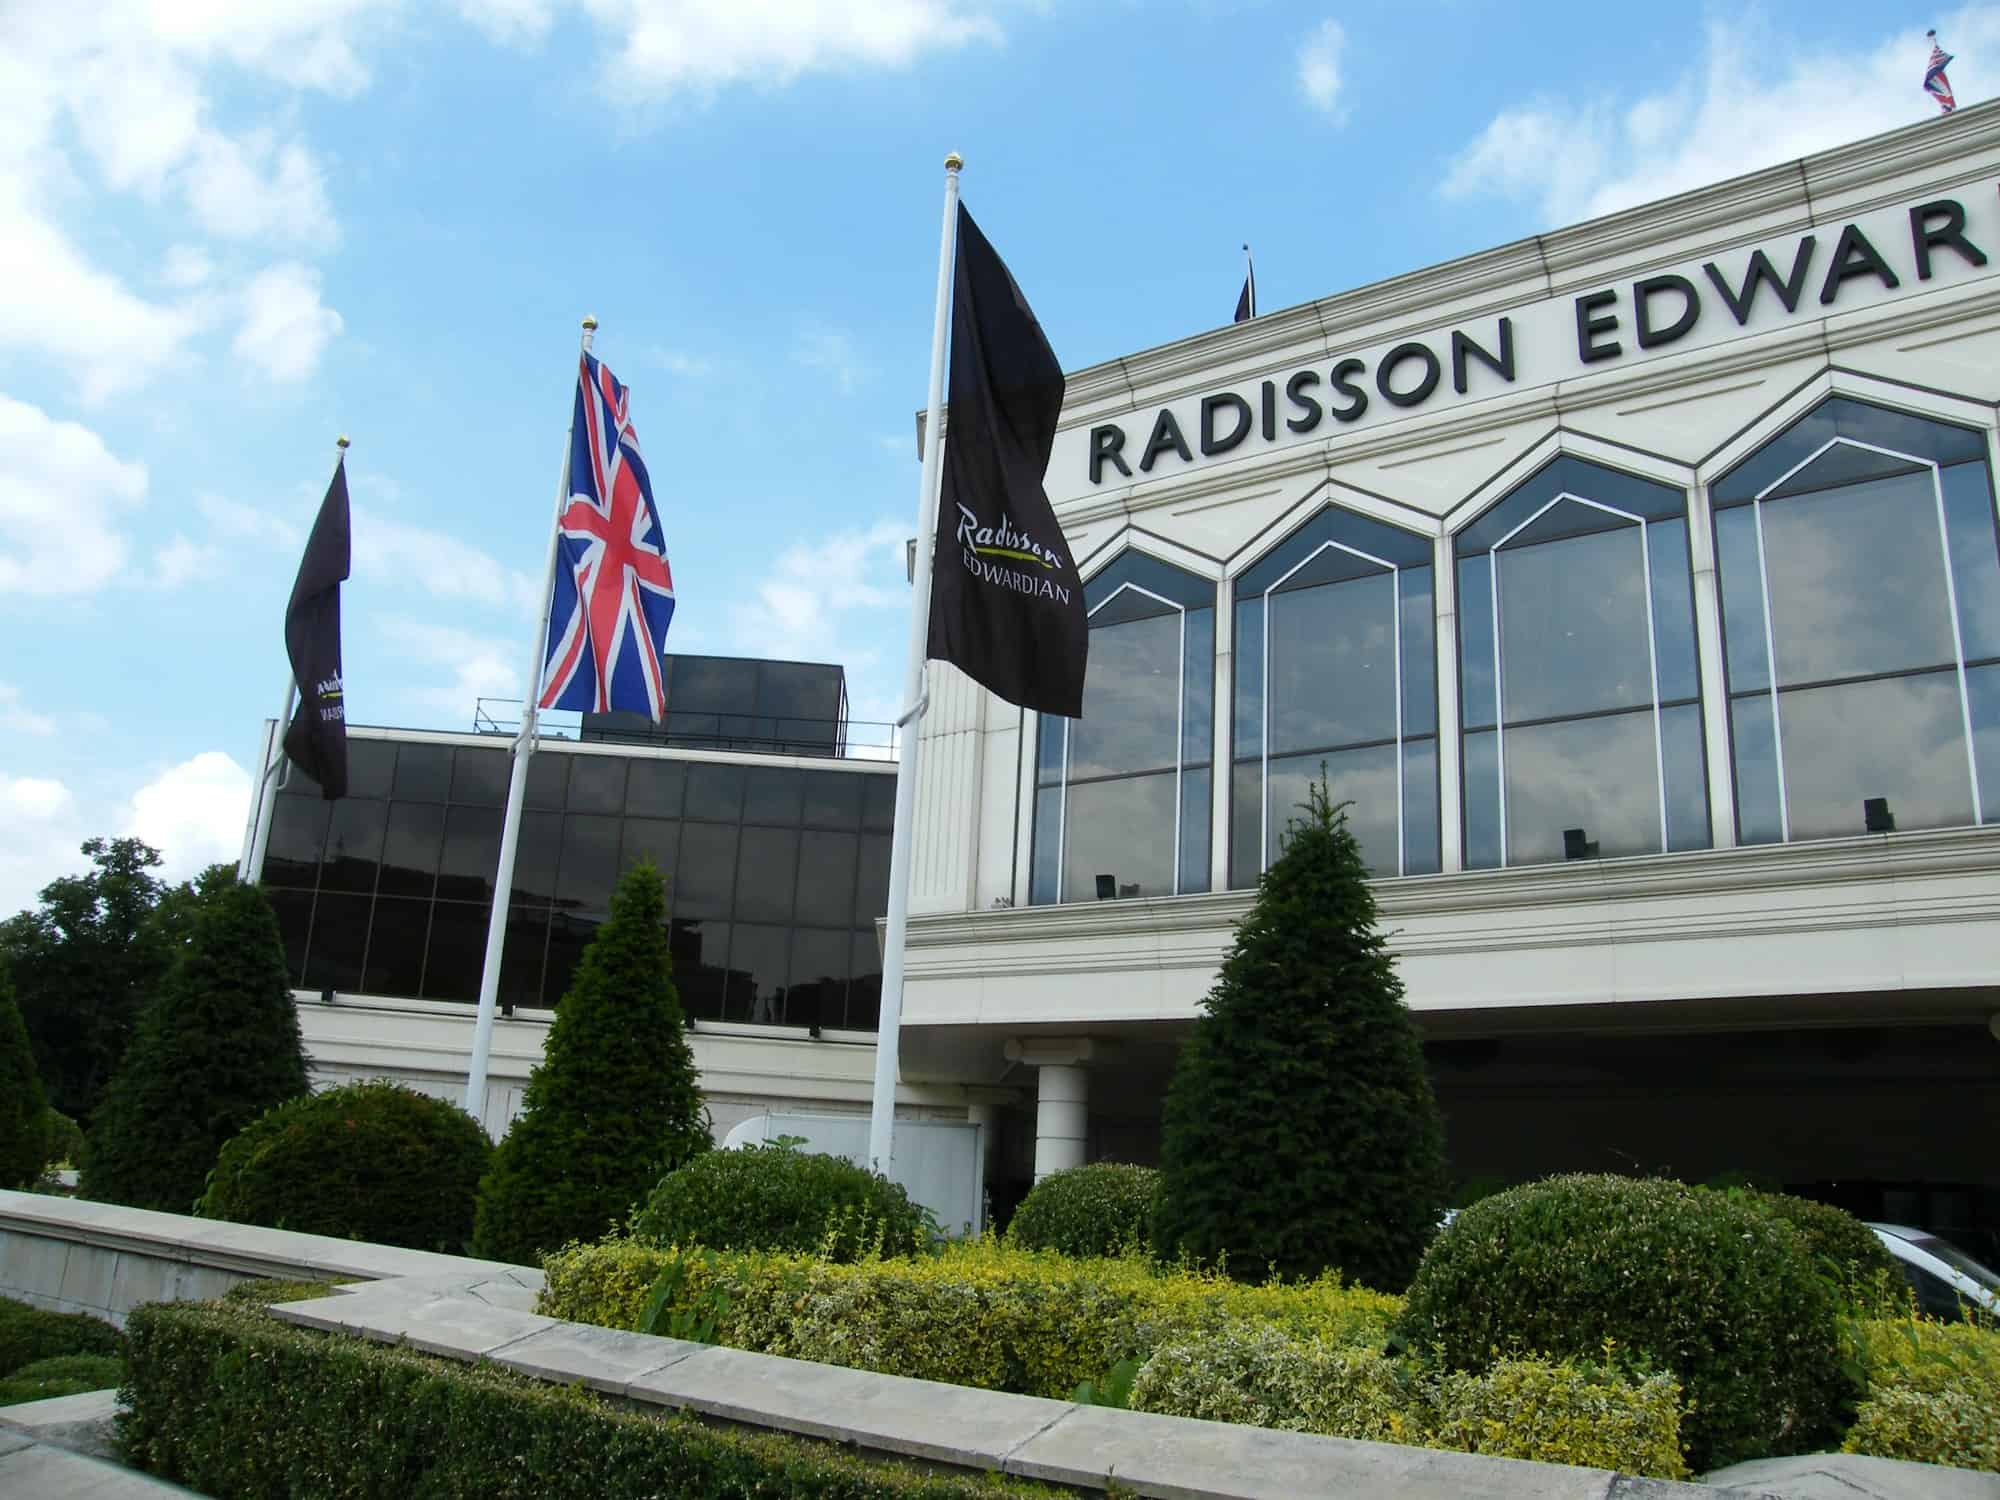 Radisson_Edwardian_Hotel_Heathrow1